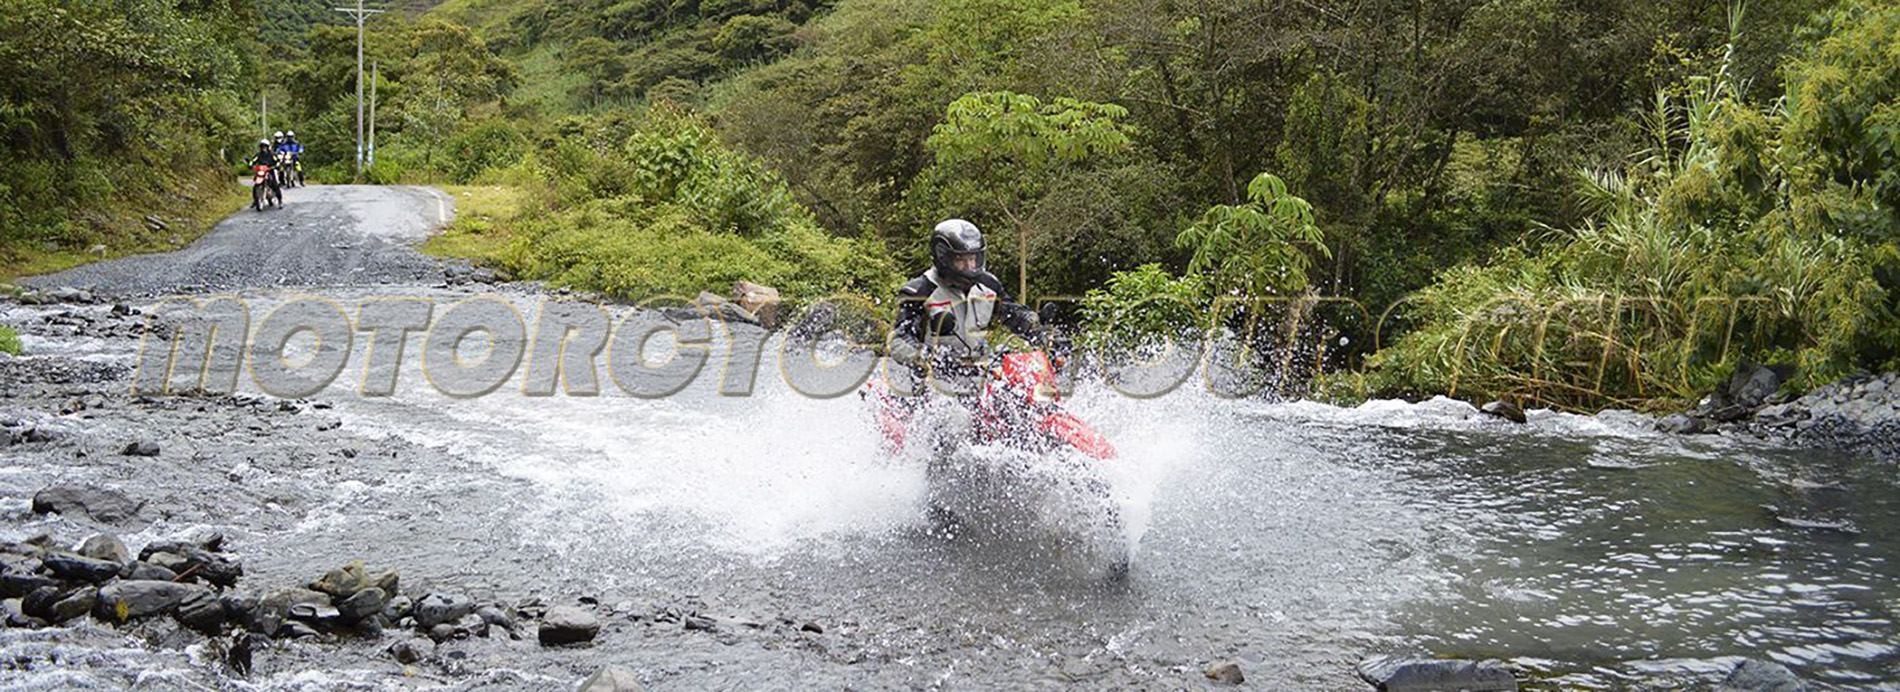 Andean People - moto Tours Peru